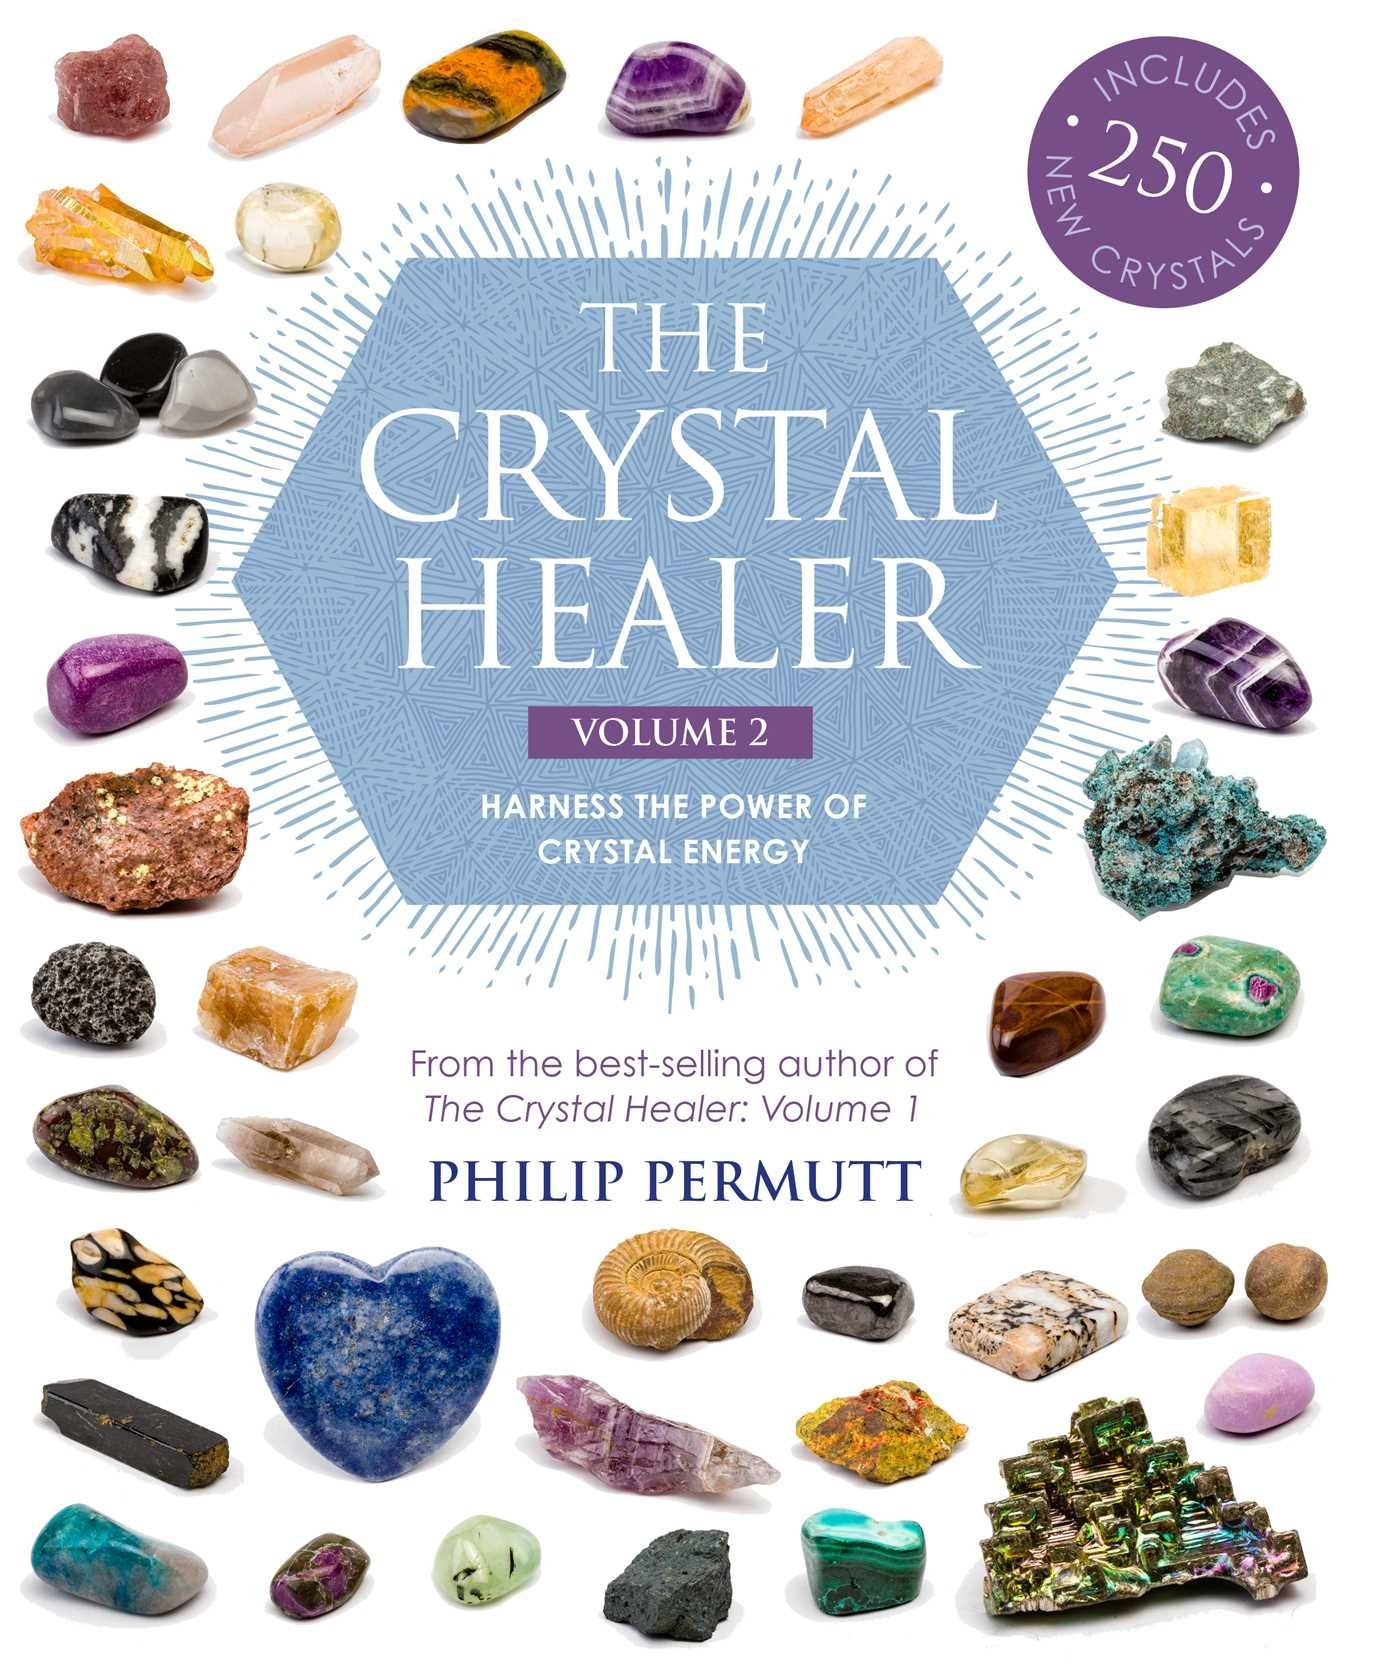 The_Crystal_Healer_Volume_2_cover_1